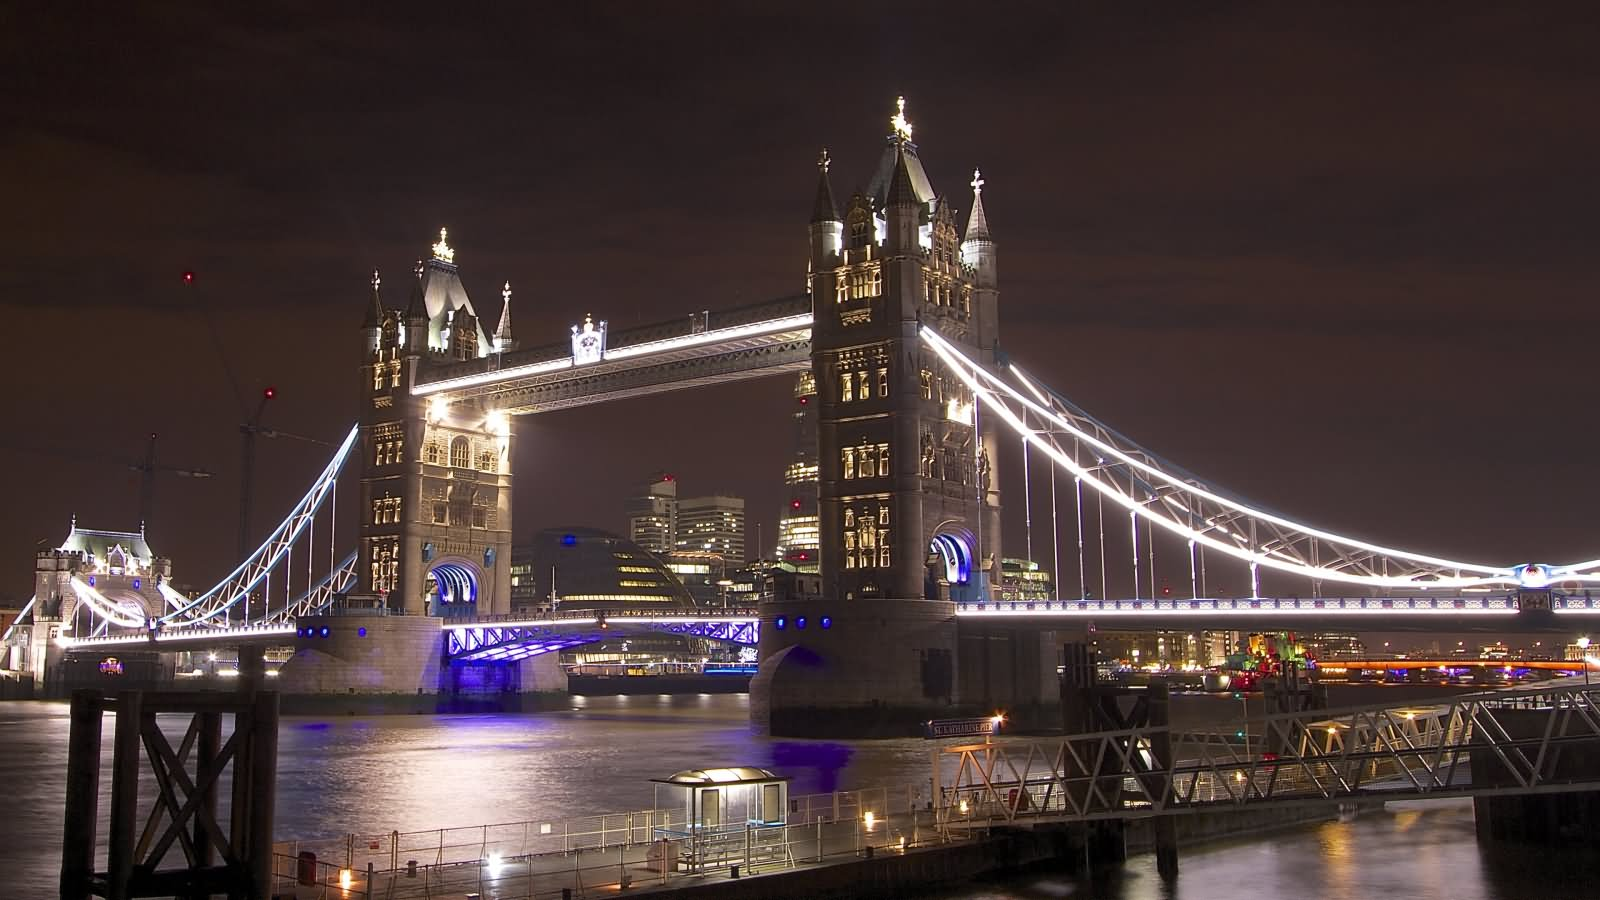 The Tower Bridge London Looks Amazing With Night Lights